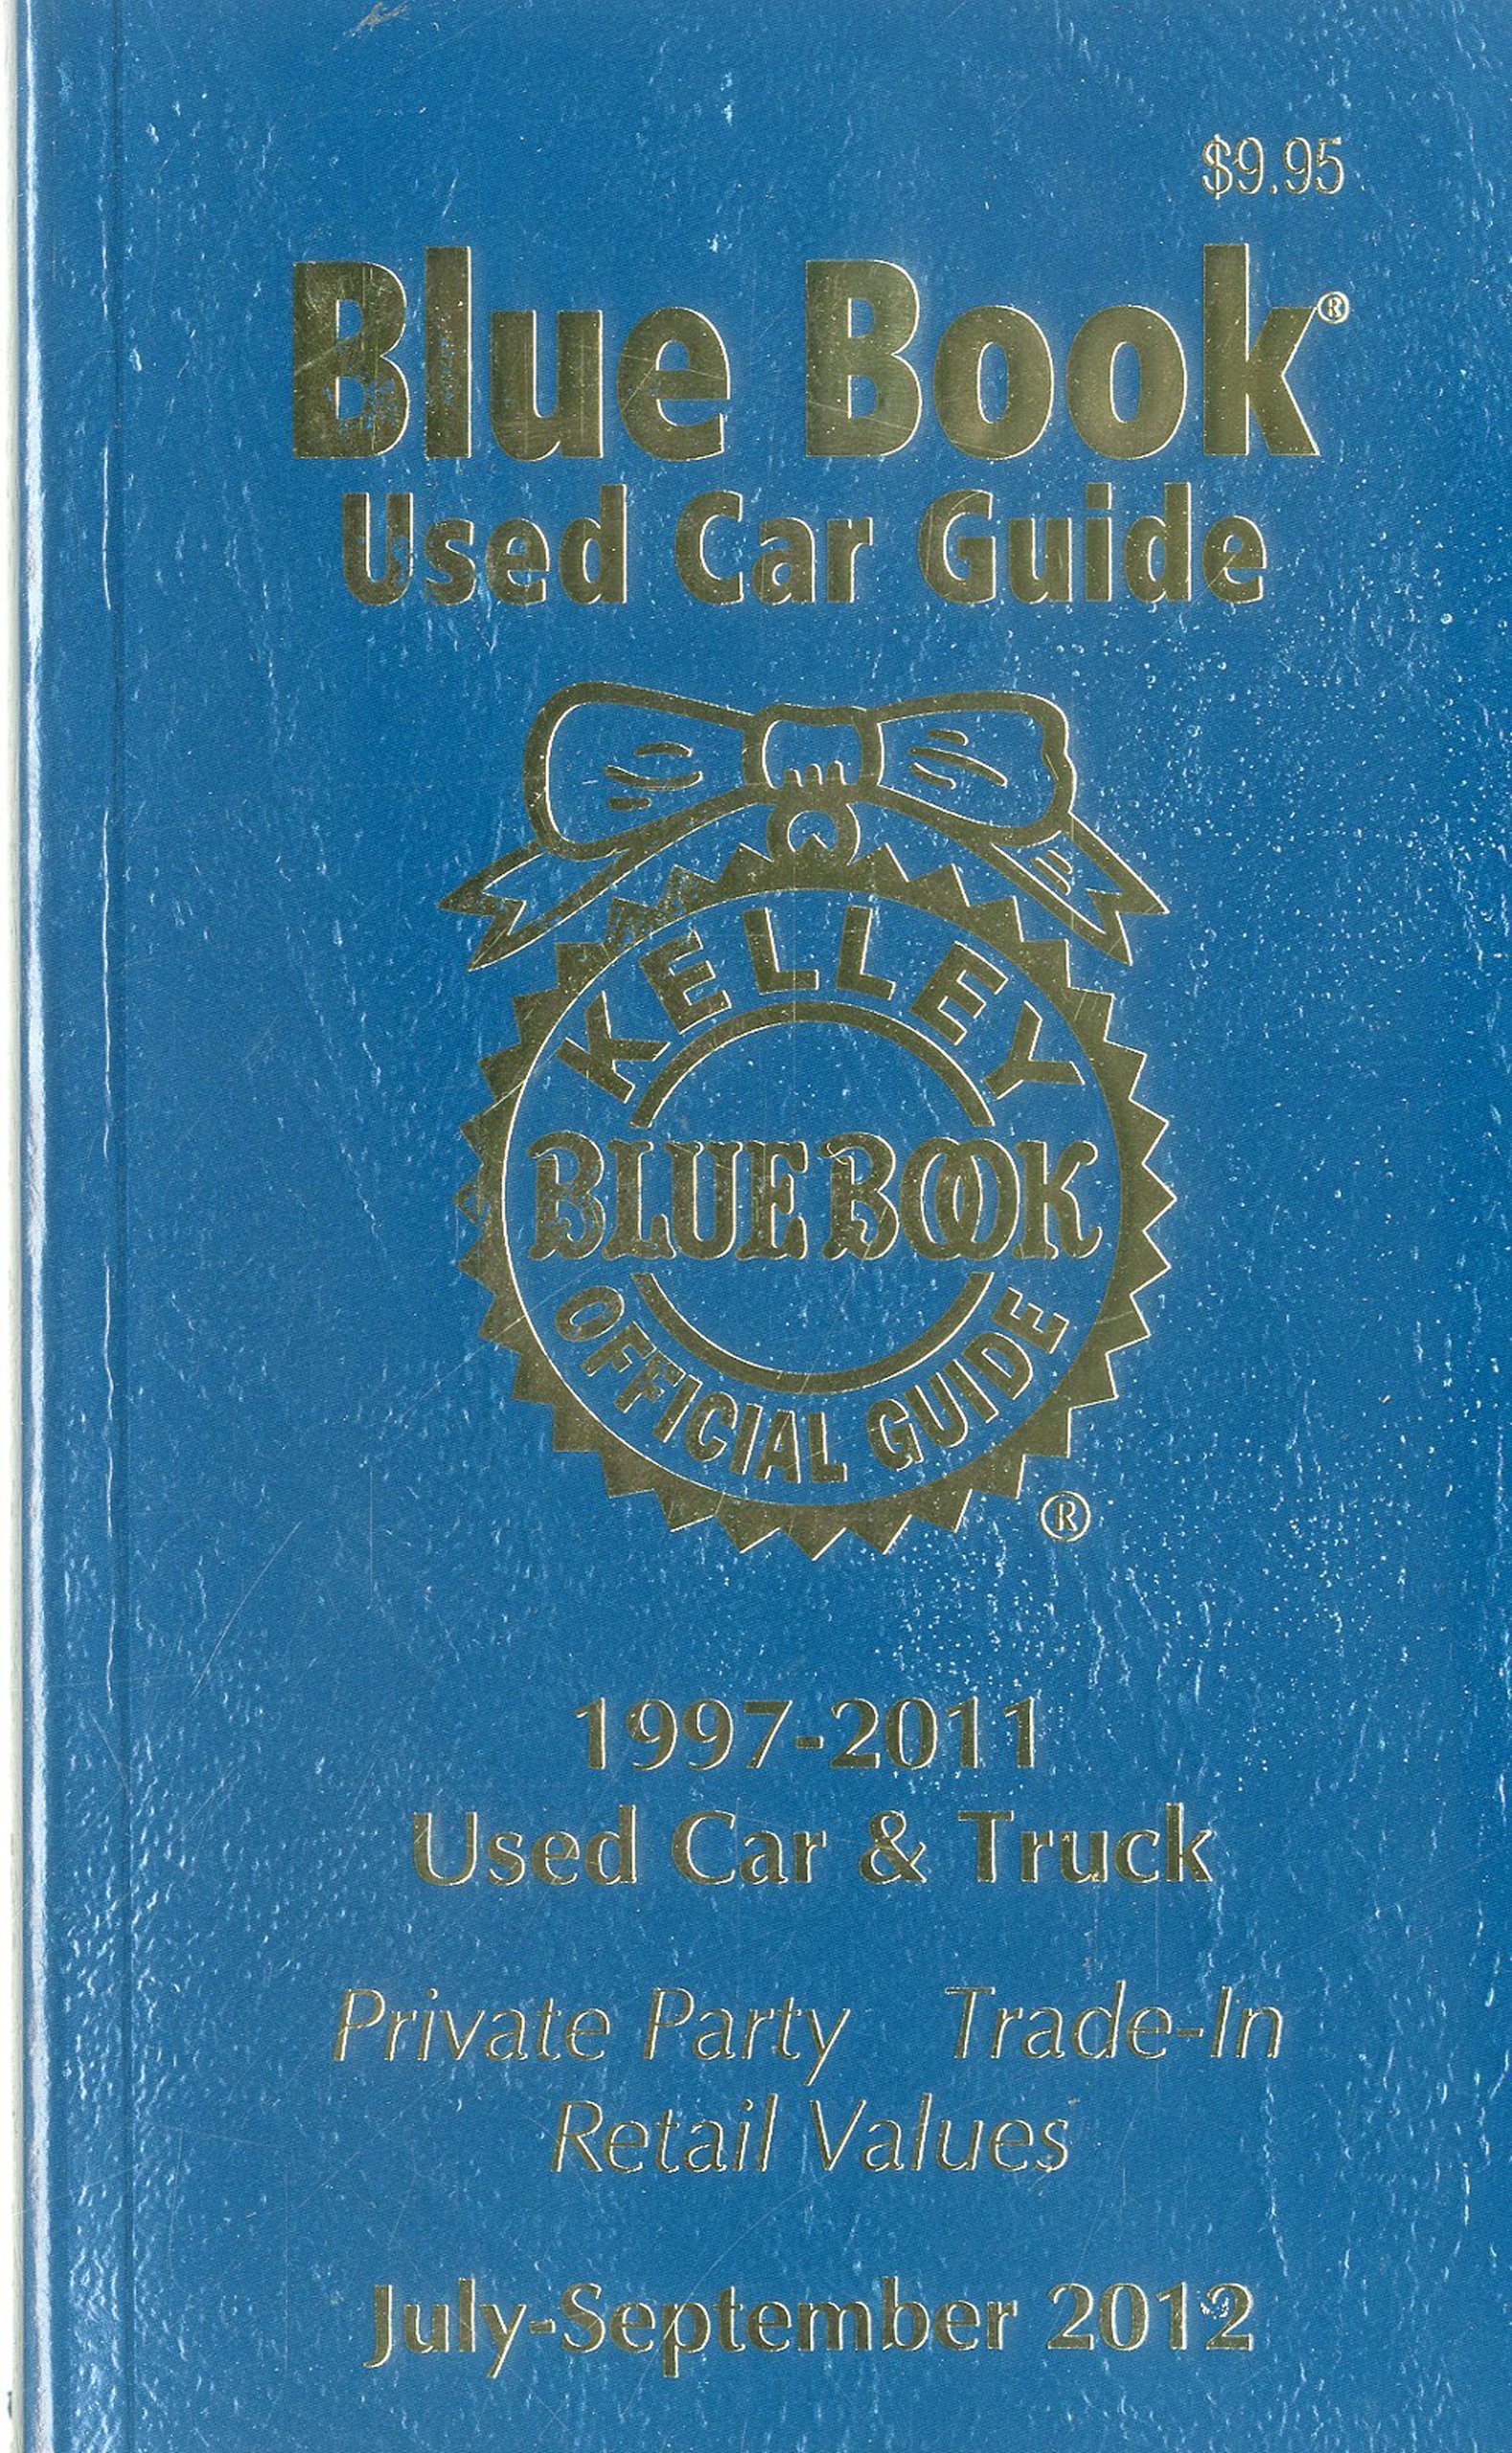 Blue Book Used Car Lovely Kelley Blue Book Used Car Guide Consumer Edition October